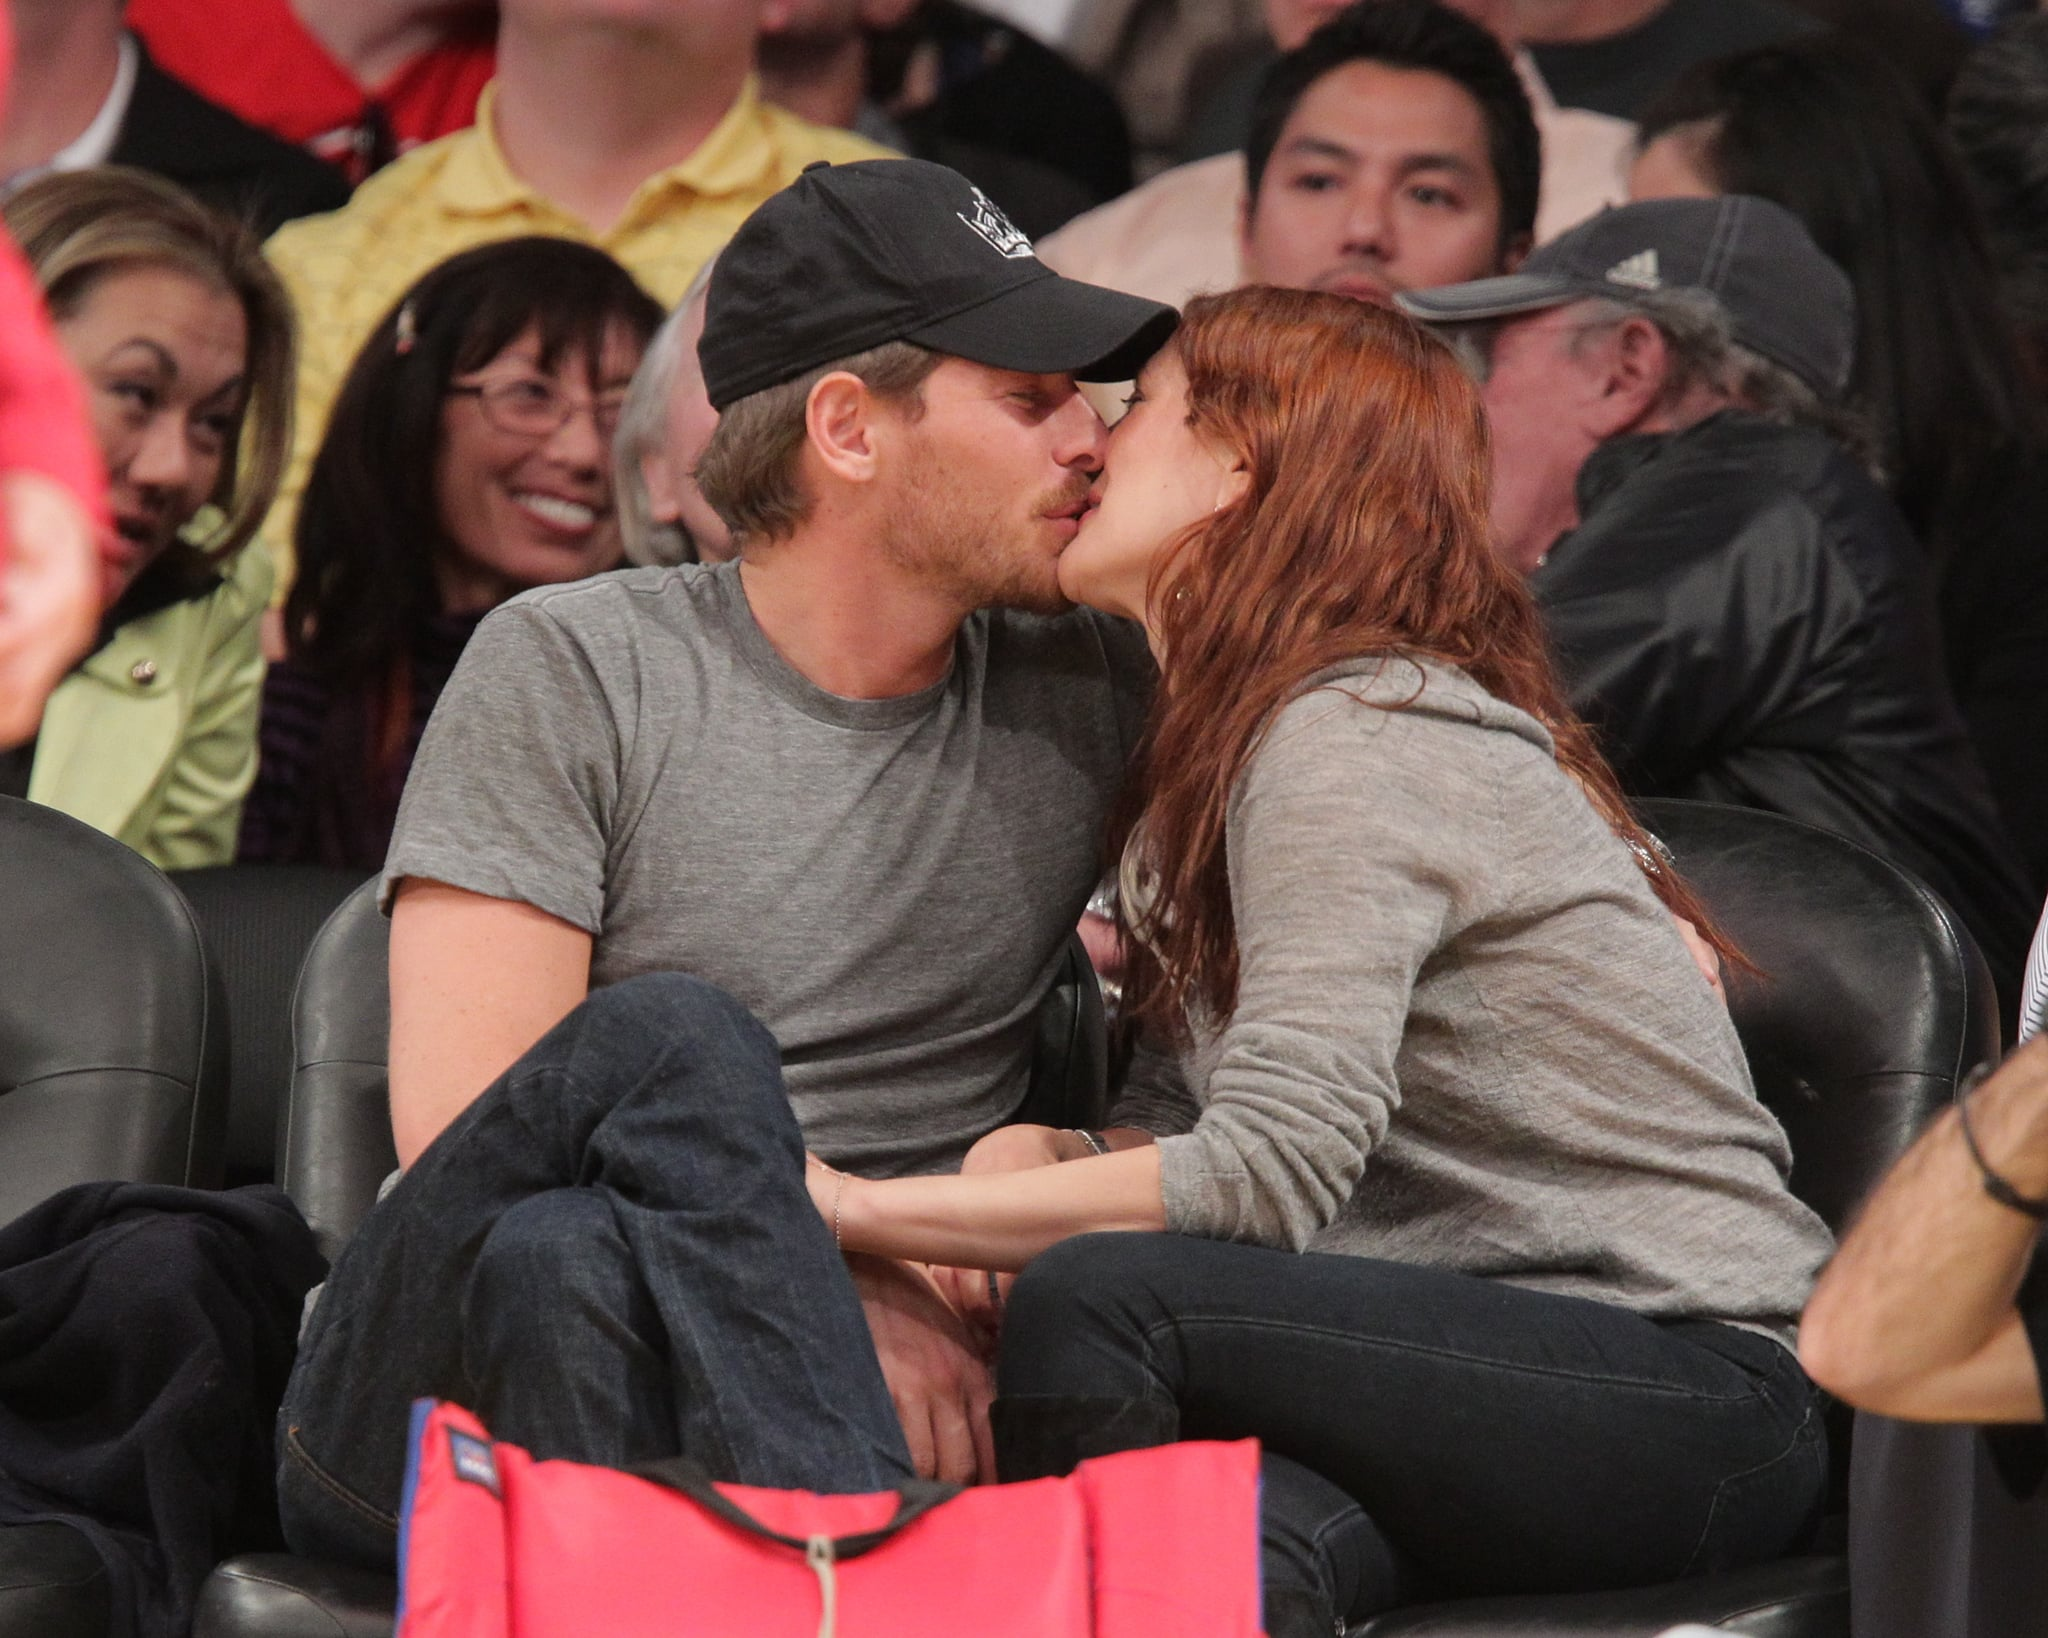 Drew Barrymore and Will Kopelman smiled while they kissed for the camera at the Lakers game.